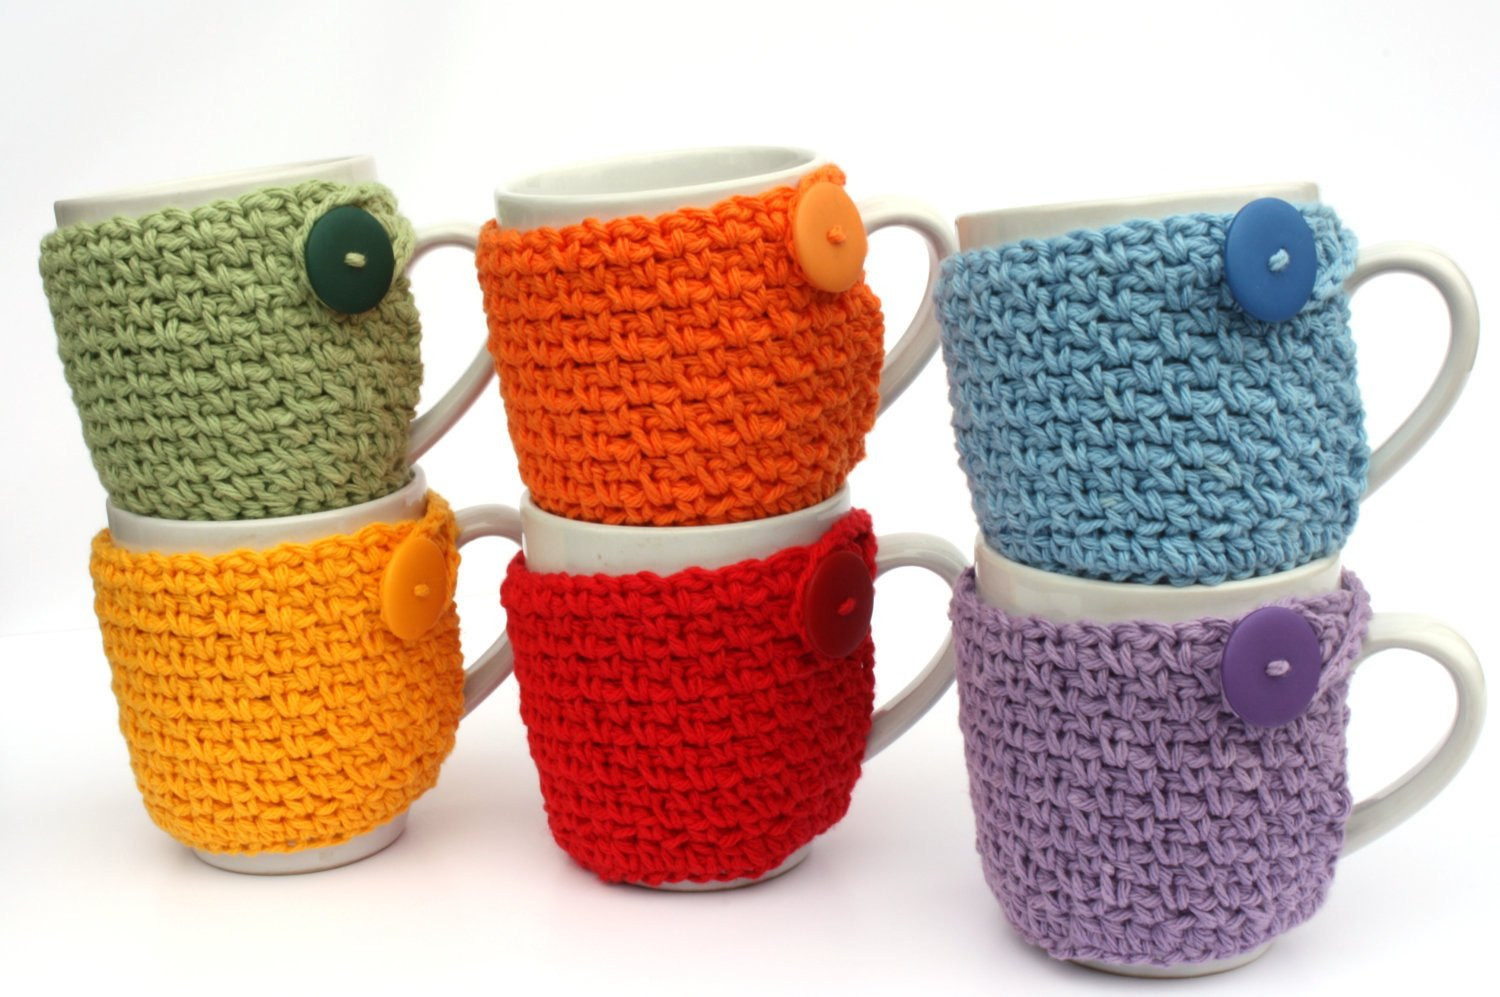 Crochet Coffee Cup Cozy Lovely Coffee Cup Cozy Crochet Cup Sleeve You Pick the by Sweetbriers Of Crochet Coffee Cup Cozy Awesome Crochet and Other Stuff Crochet A Mug Cozy Free Pattern